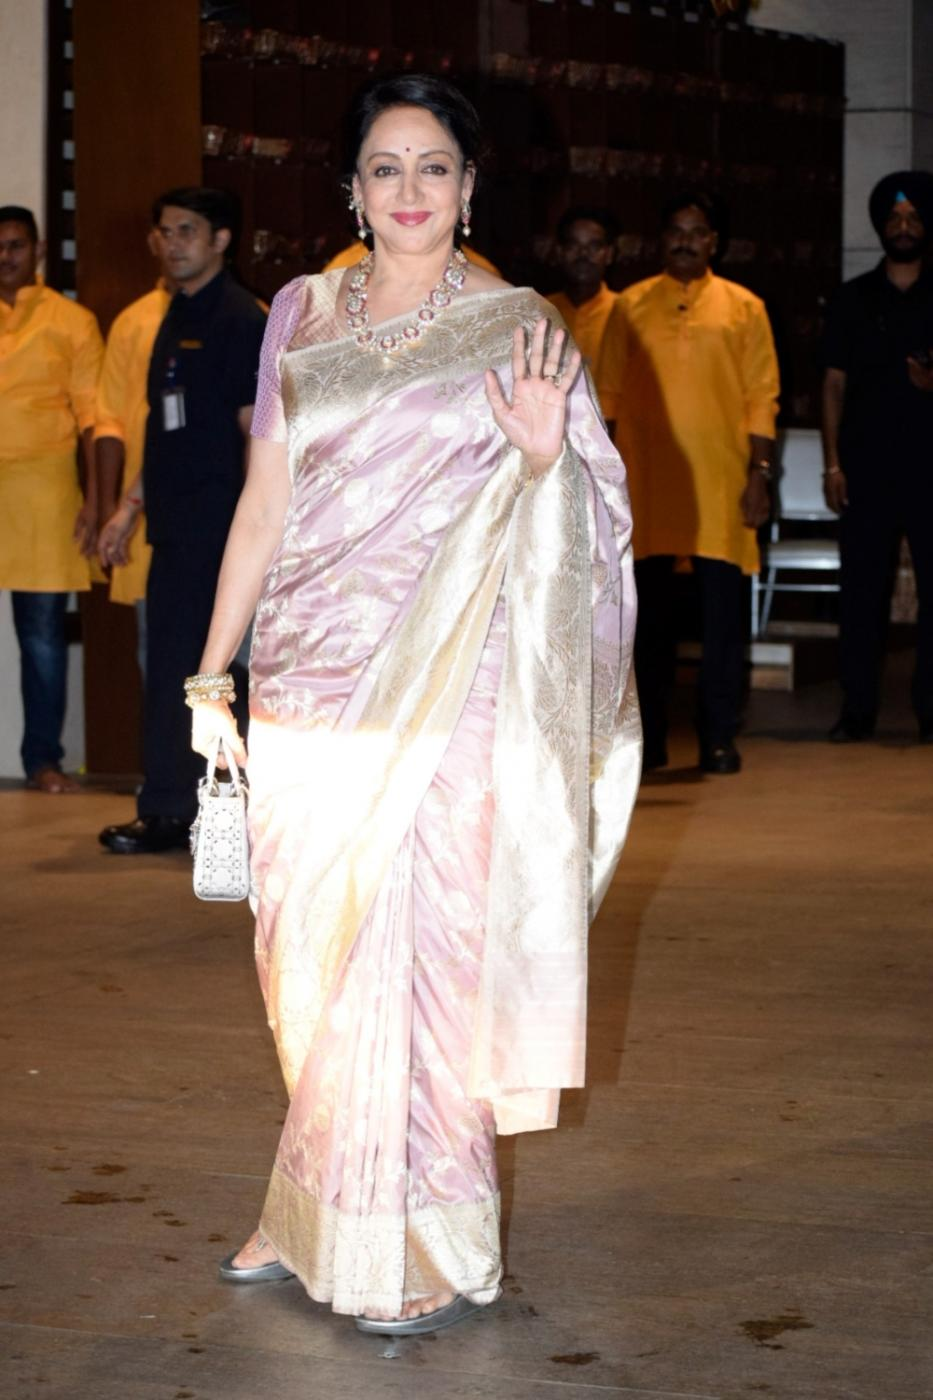 Mumbai: BJP MP Hema Malini at Reliance Industries Chairman and MD Mukesh Ambani's residence to celebrate Ganesh Chaturthi in Mumbai on Sept 13, 2018. (Photo: IANS) by .